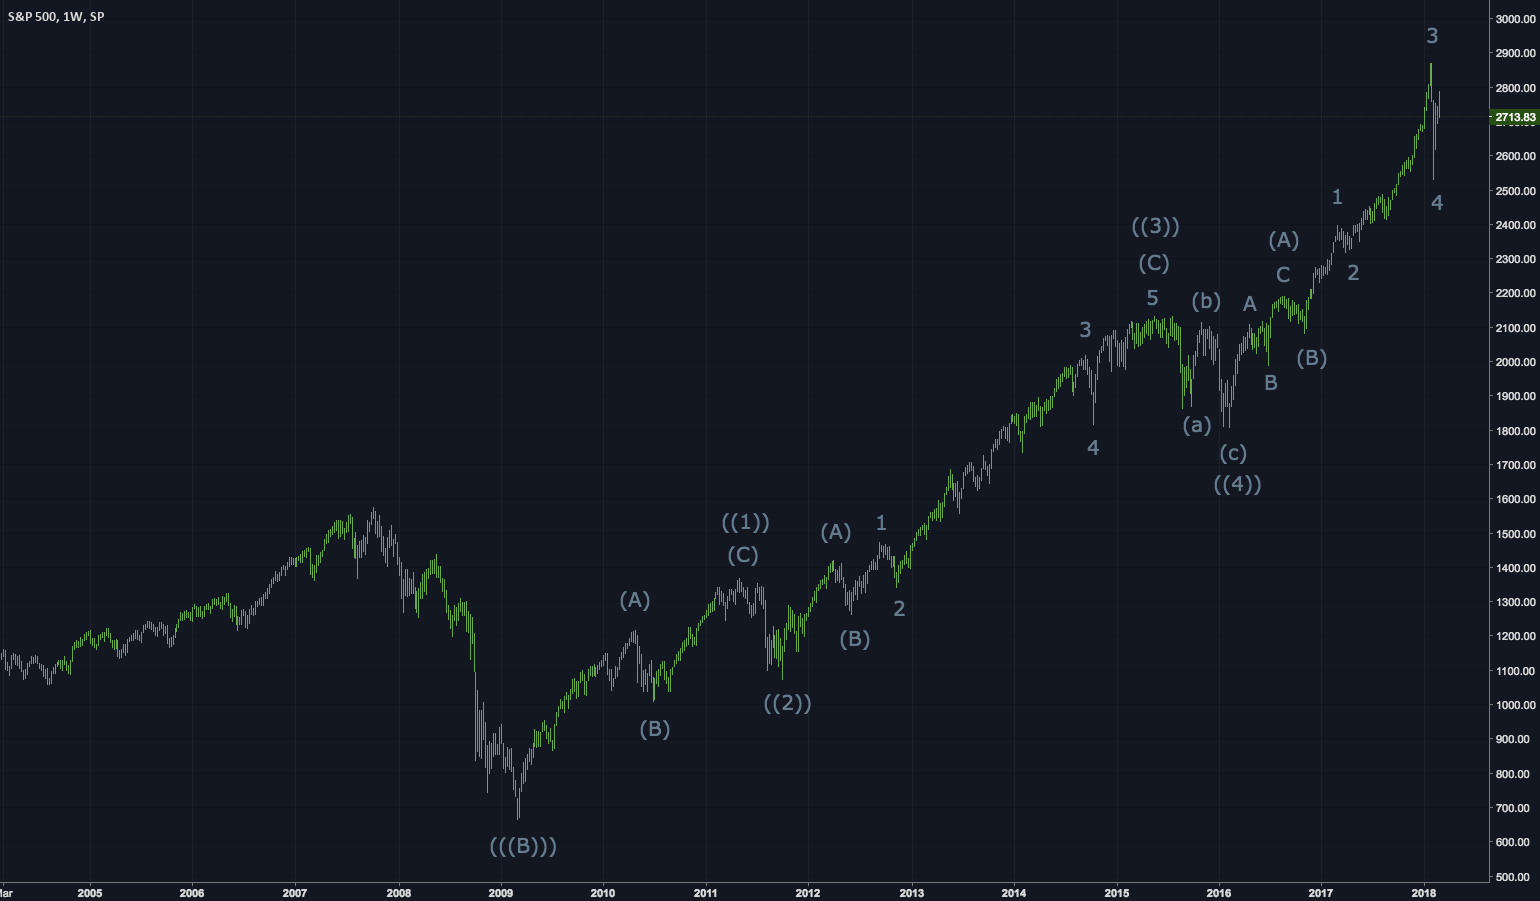 S&P 500  weekly  chart (SPY, SPX) The end of the bull market.